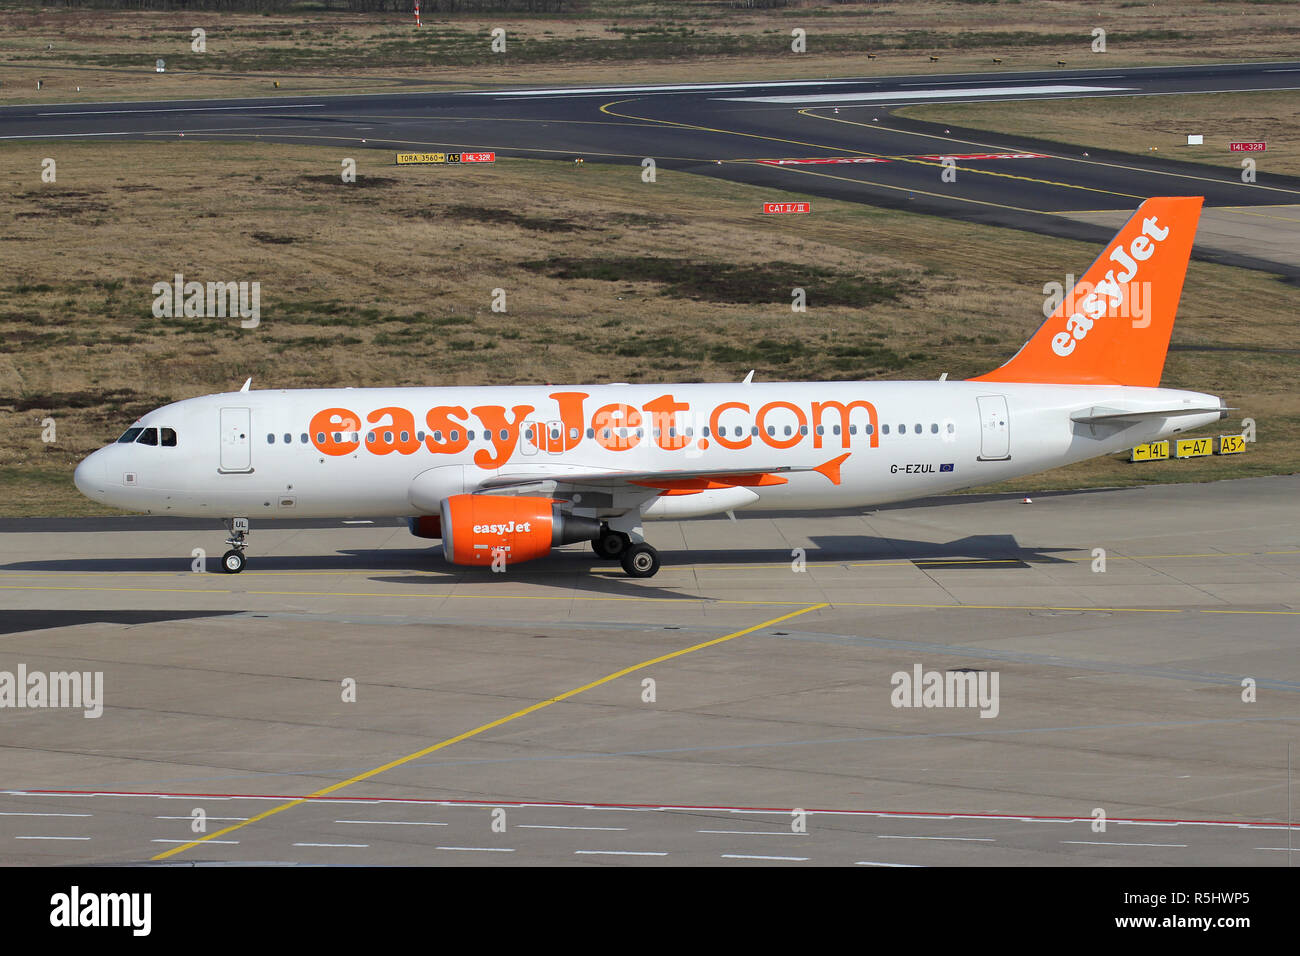 British easyJet Airbus A320-200 with registration G-EZUL taxiing to terminal. - Stock Image